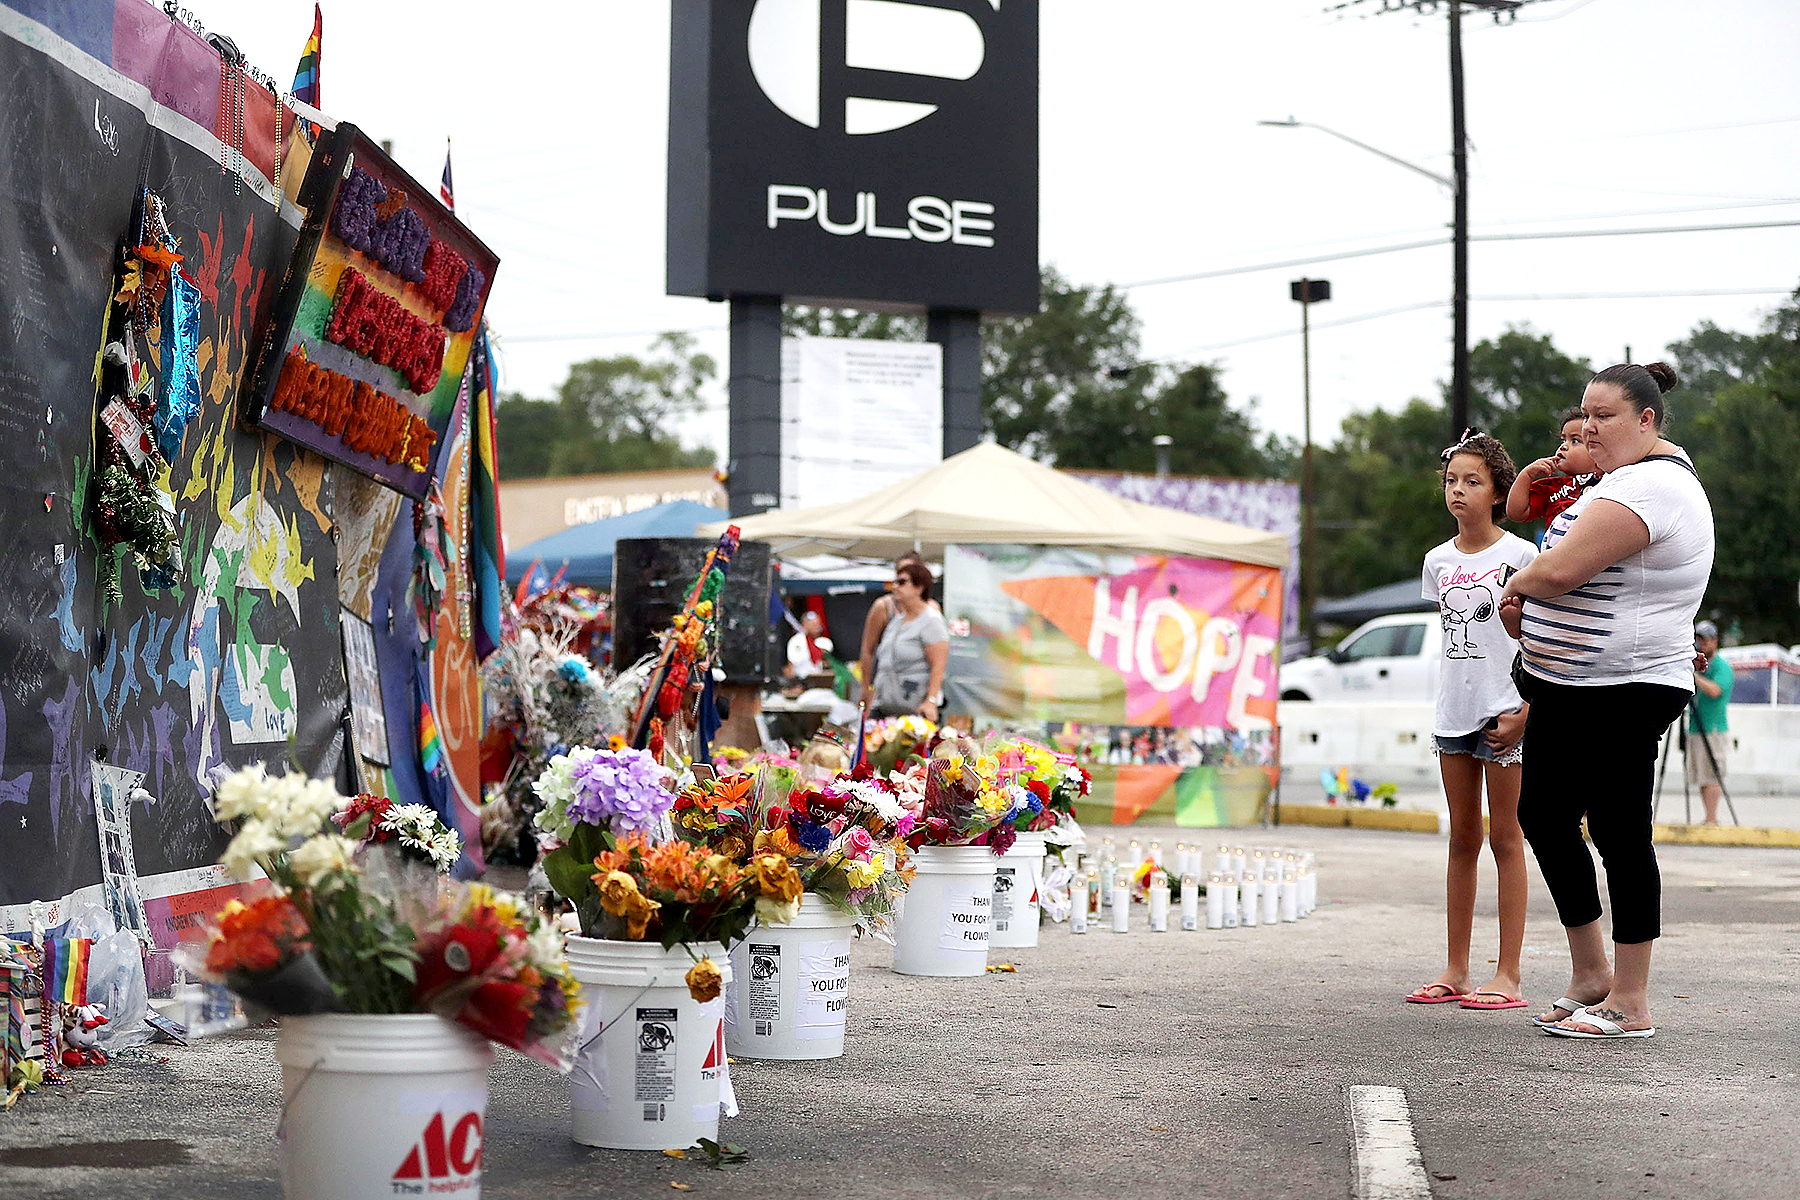 People visit the memorial to the victims of the mass shooting setup around the Pulse gay nightclub one year after the shooting on June 12, 2017 in Orlando, Florida. Omar Mateen killed 49 people at the club a little after 2 a.m. on June 12, 2016.